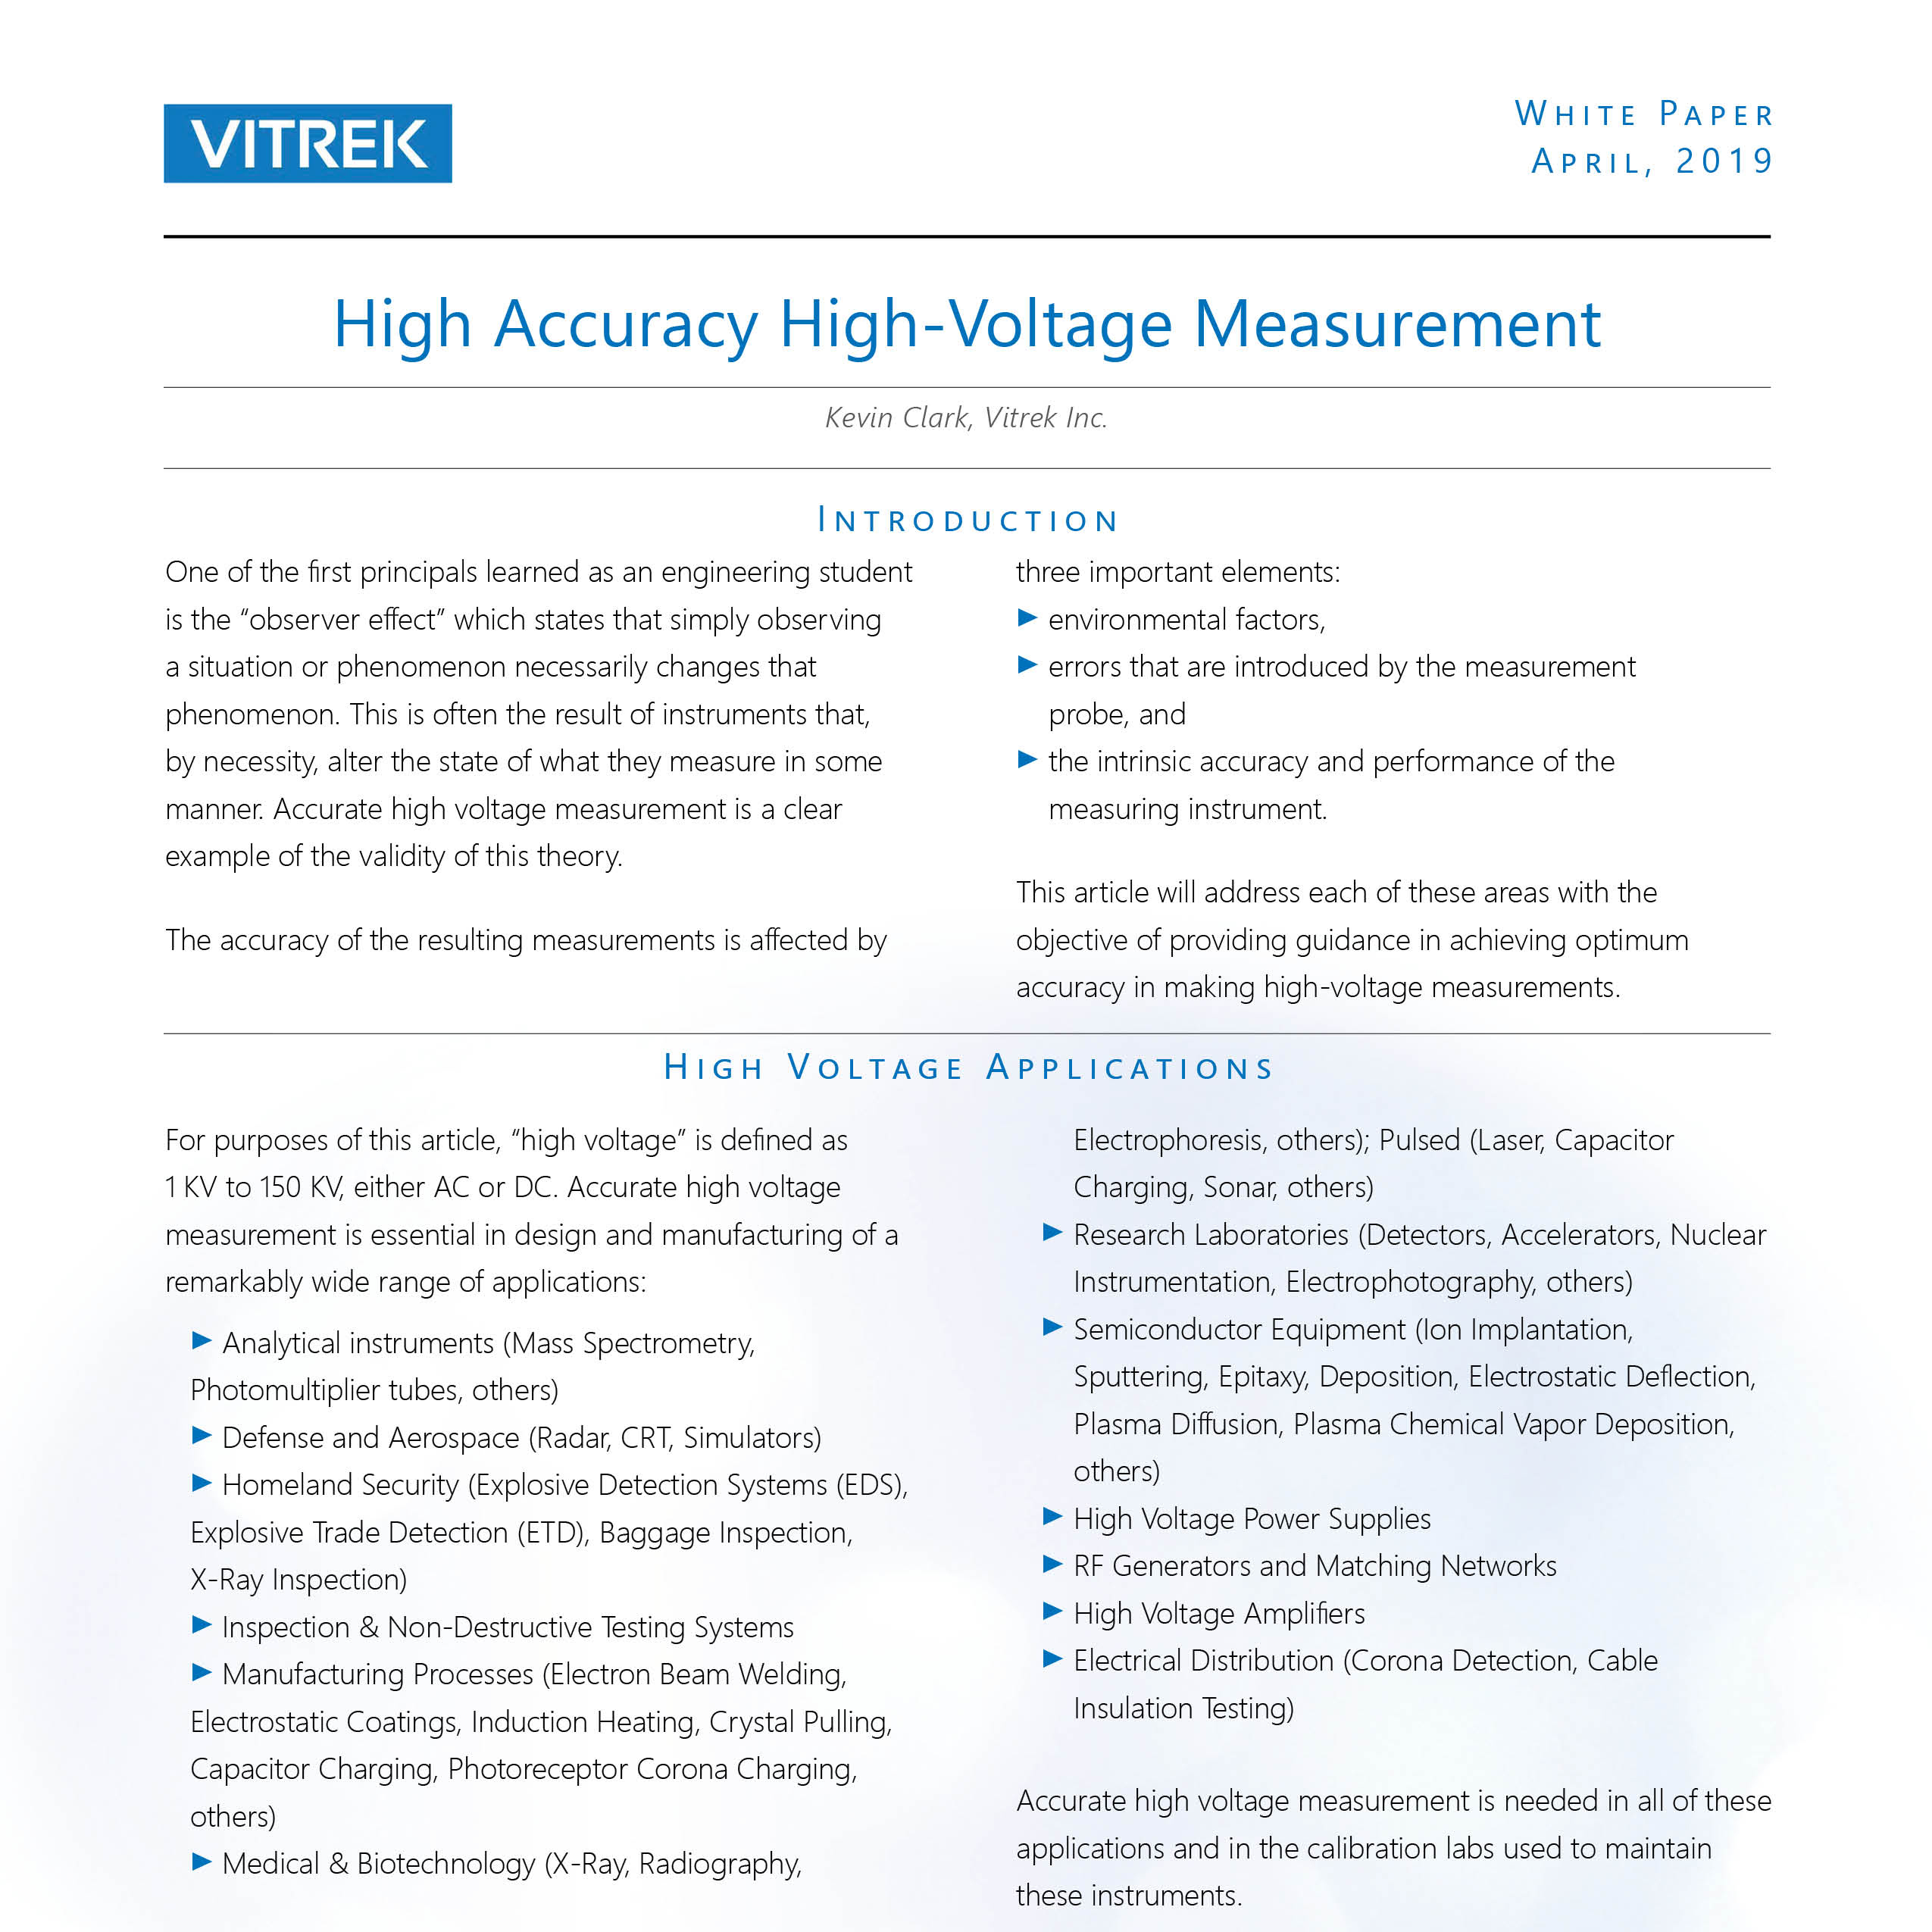 Vitrek_High Voltage Measurement WP front image